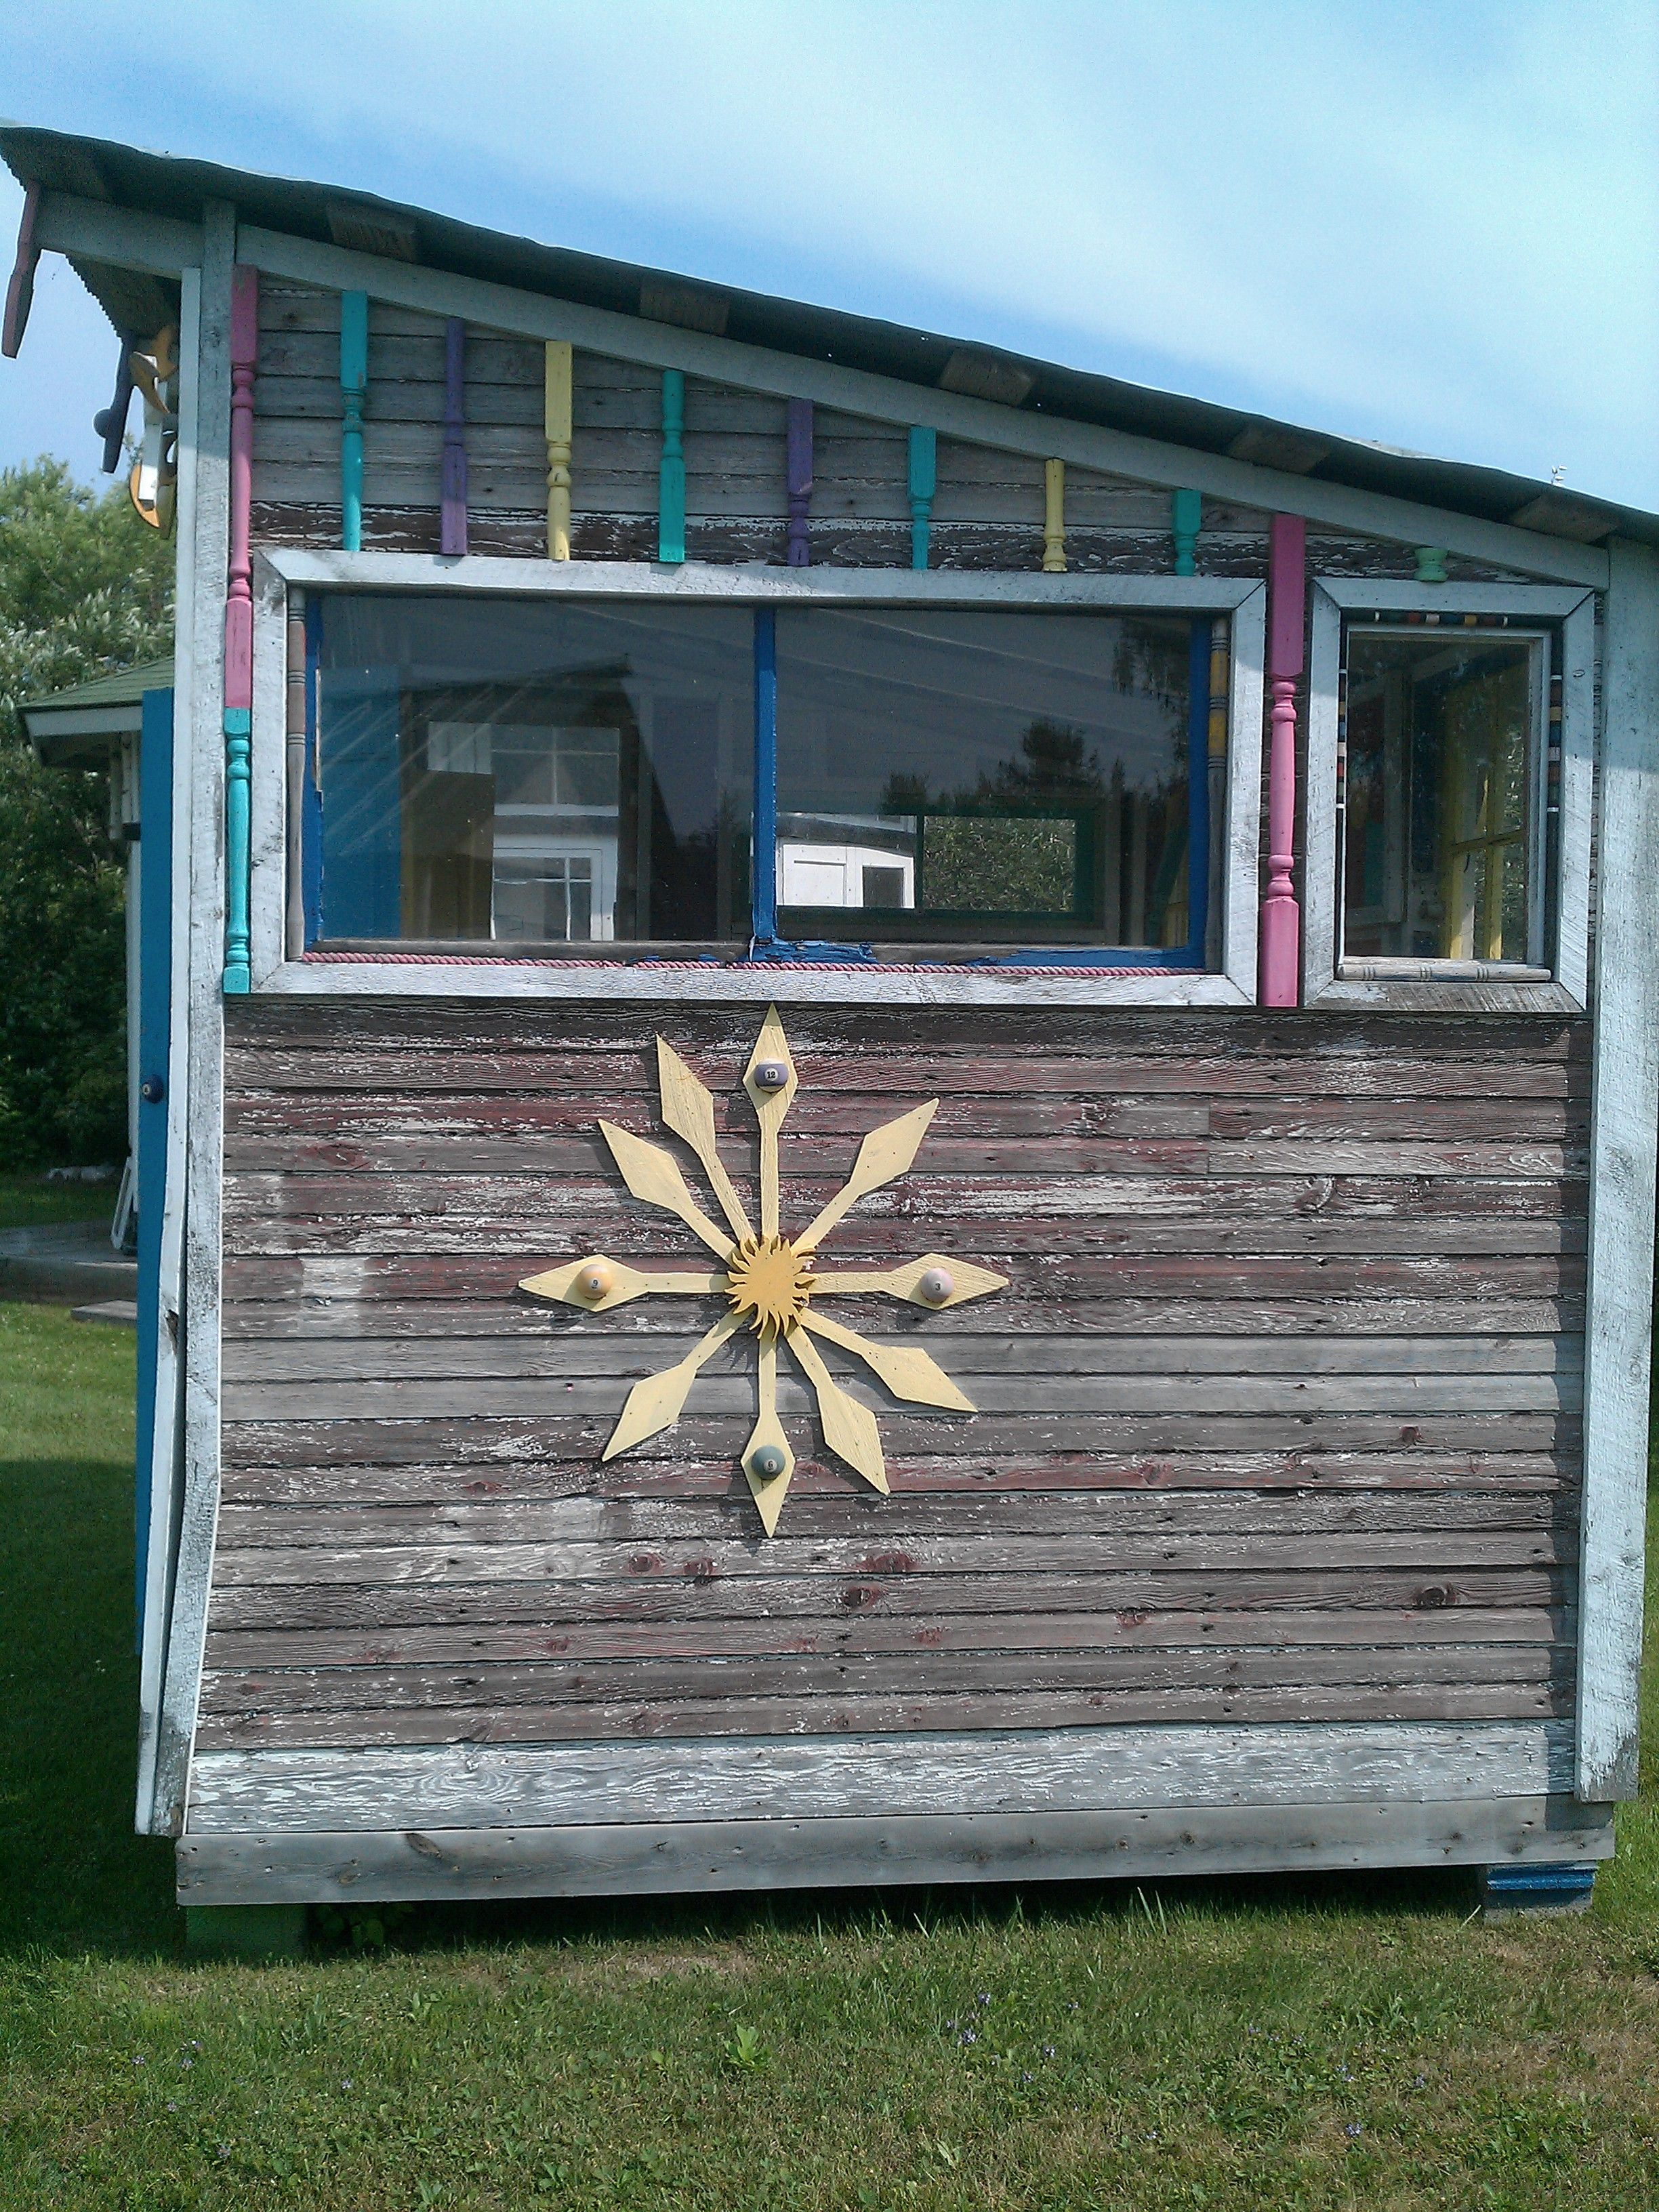 garden house made from salvage by bob thomas at his store monumental finds